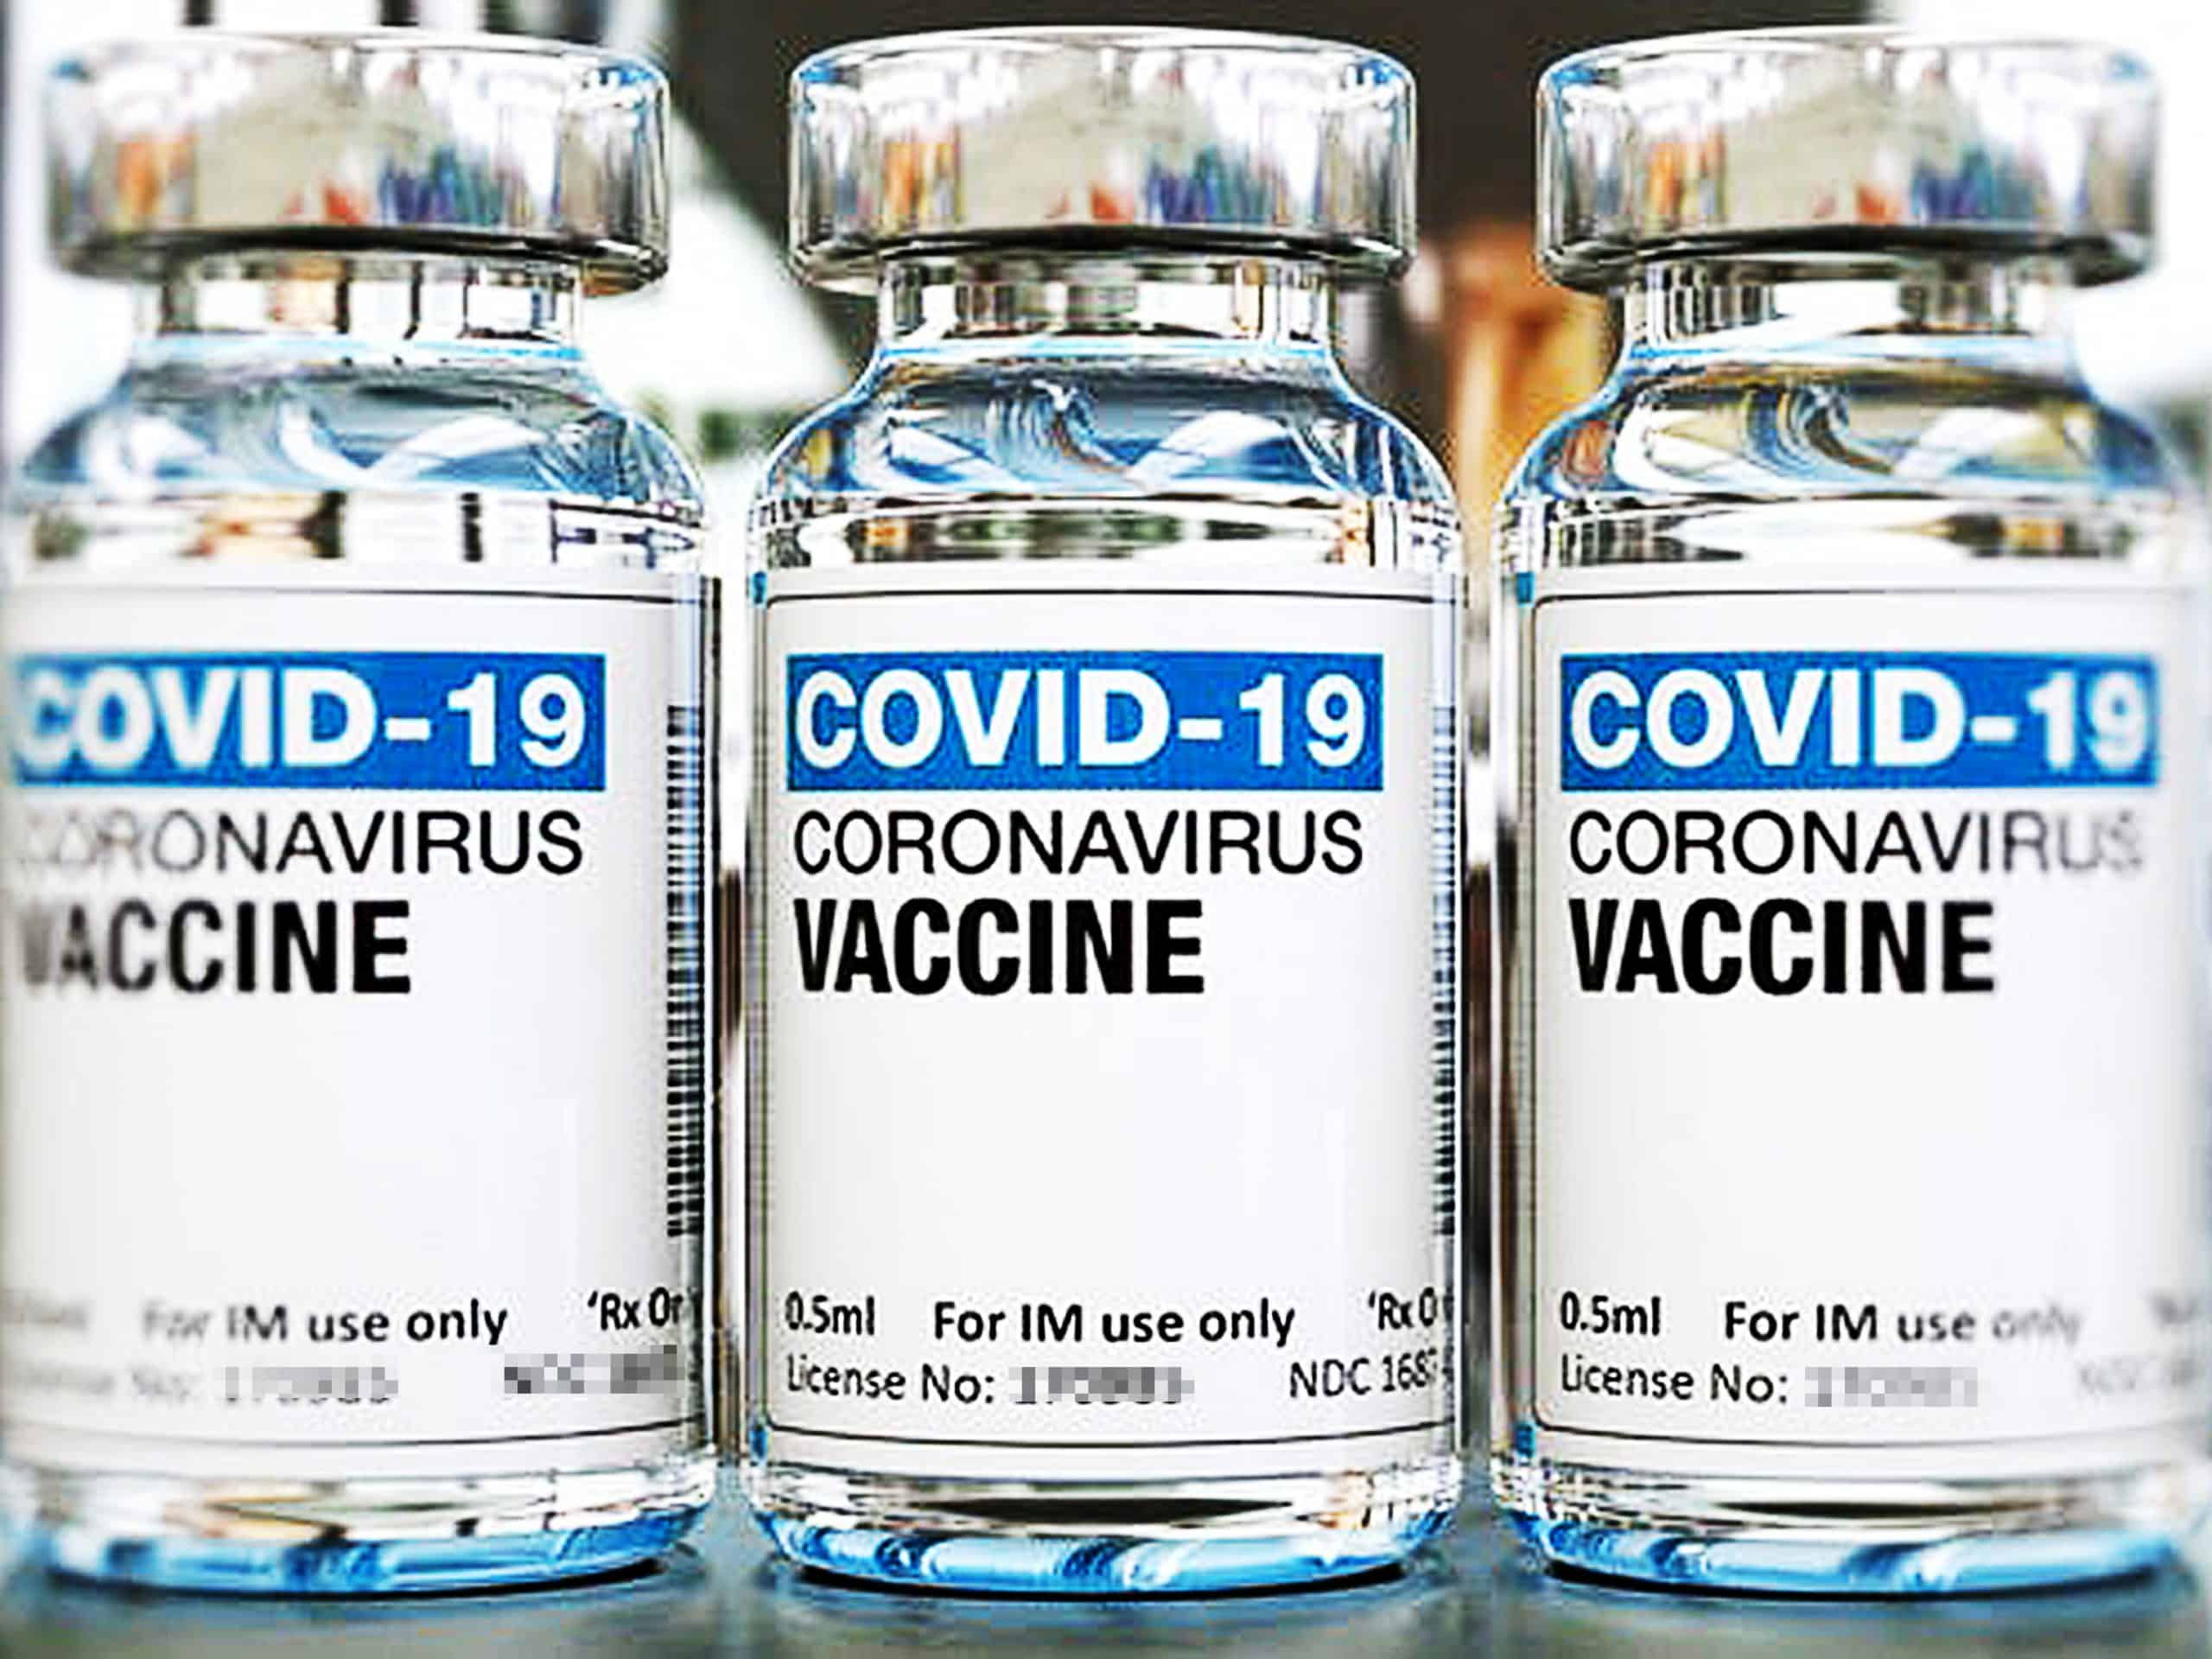 COVID Vaccines Now Available for LA County Residents Age 50+